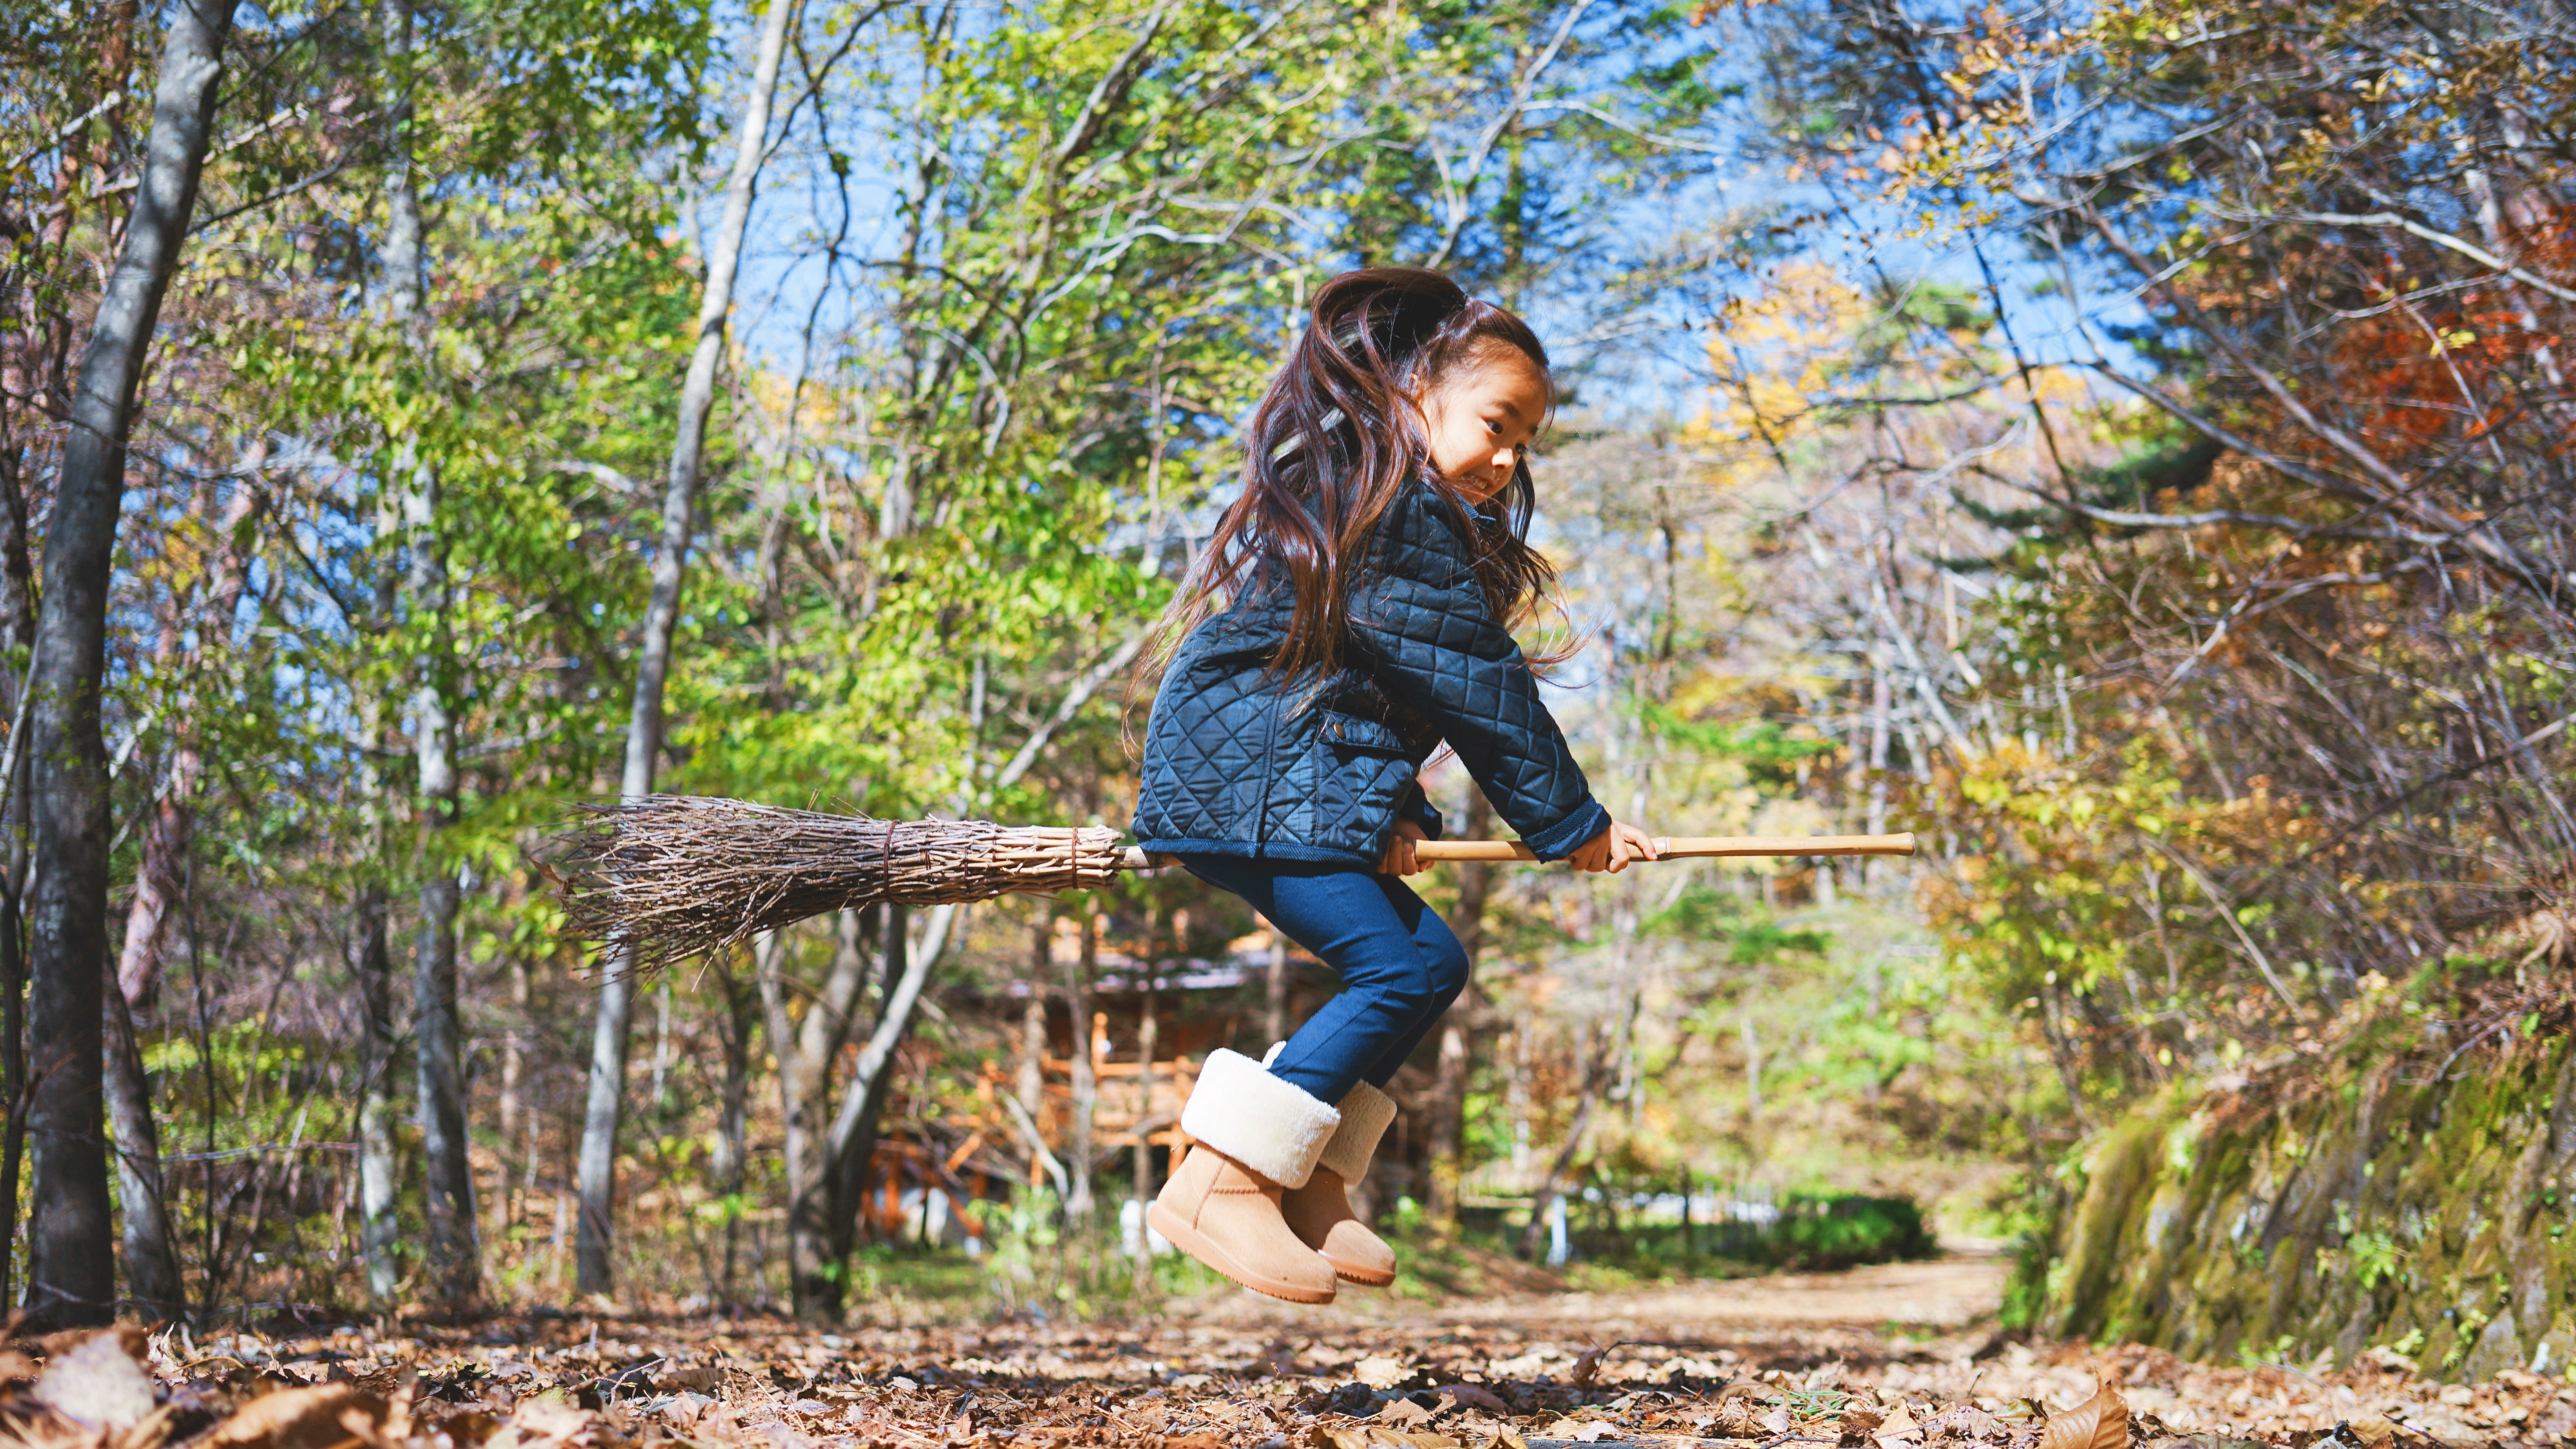 A New Push For Play Based Learning Why >> Child Development Kids That Play More Often Are Better Prepared For